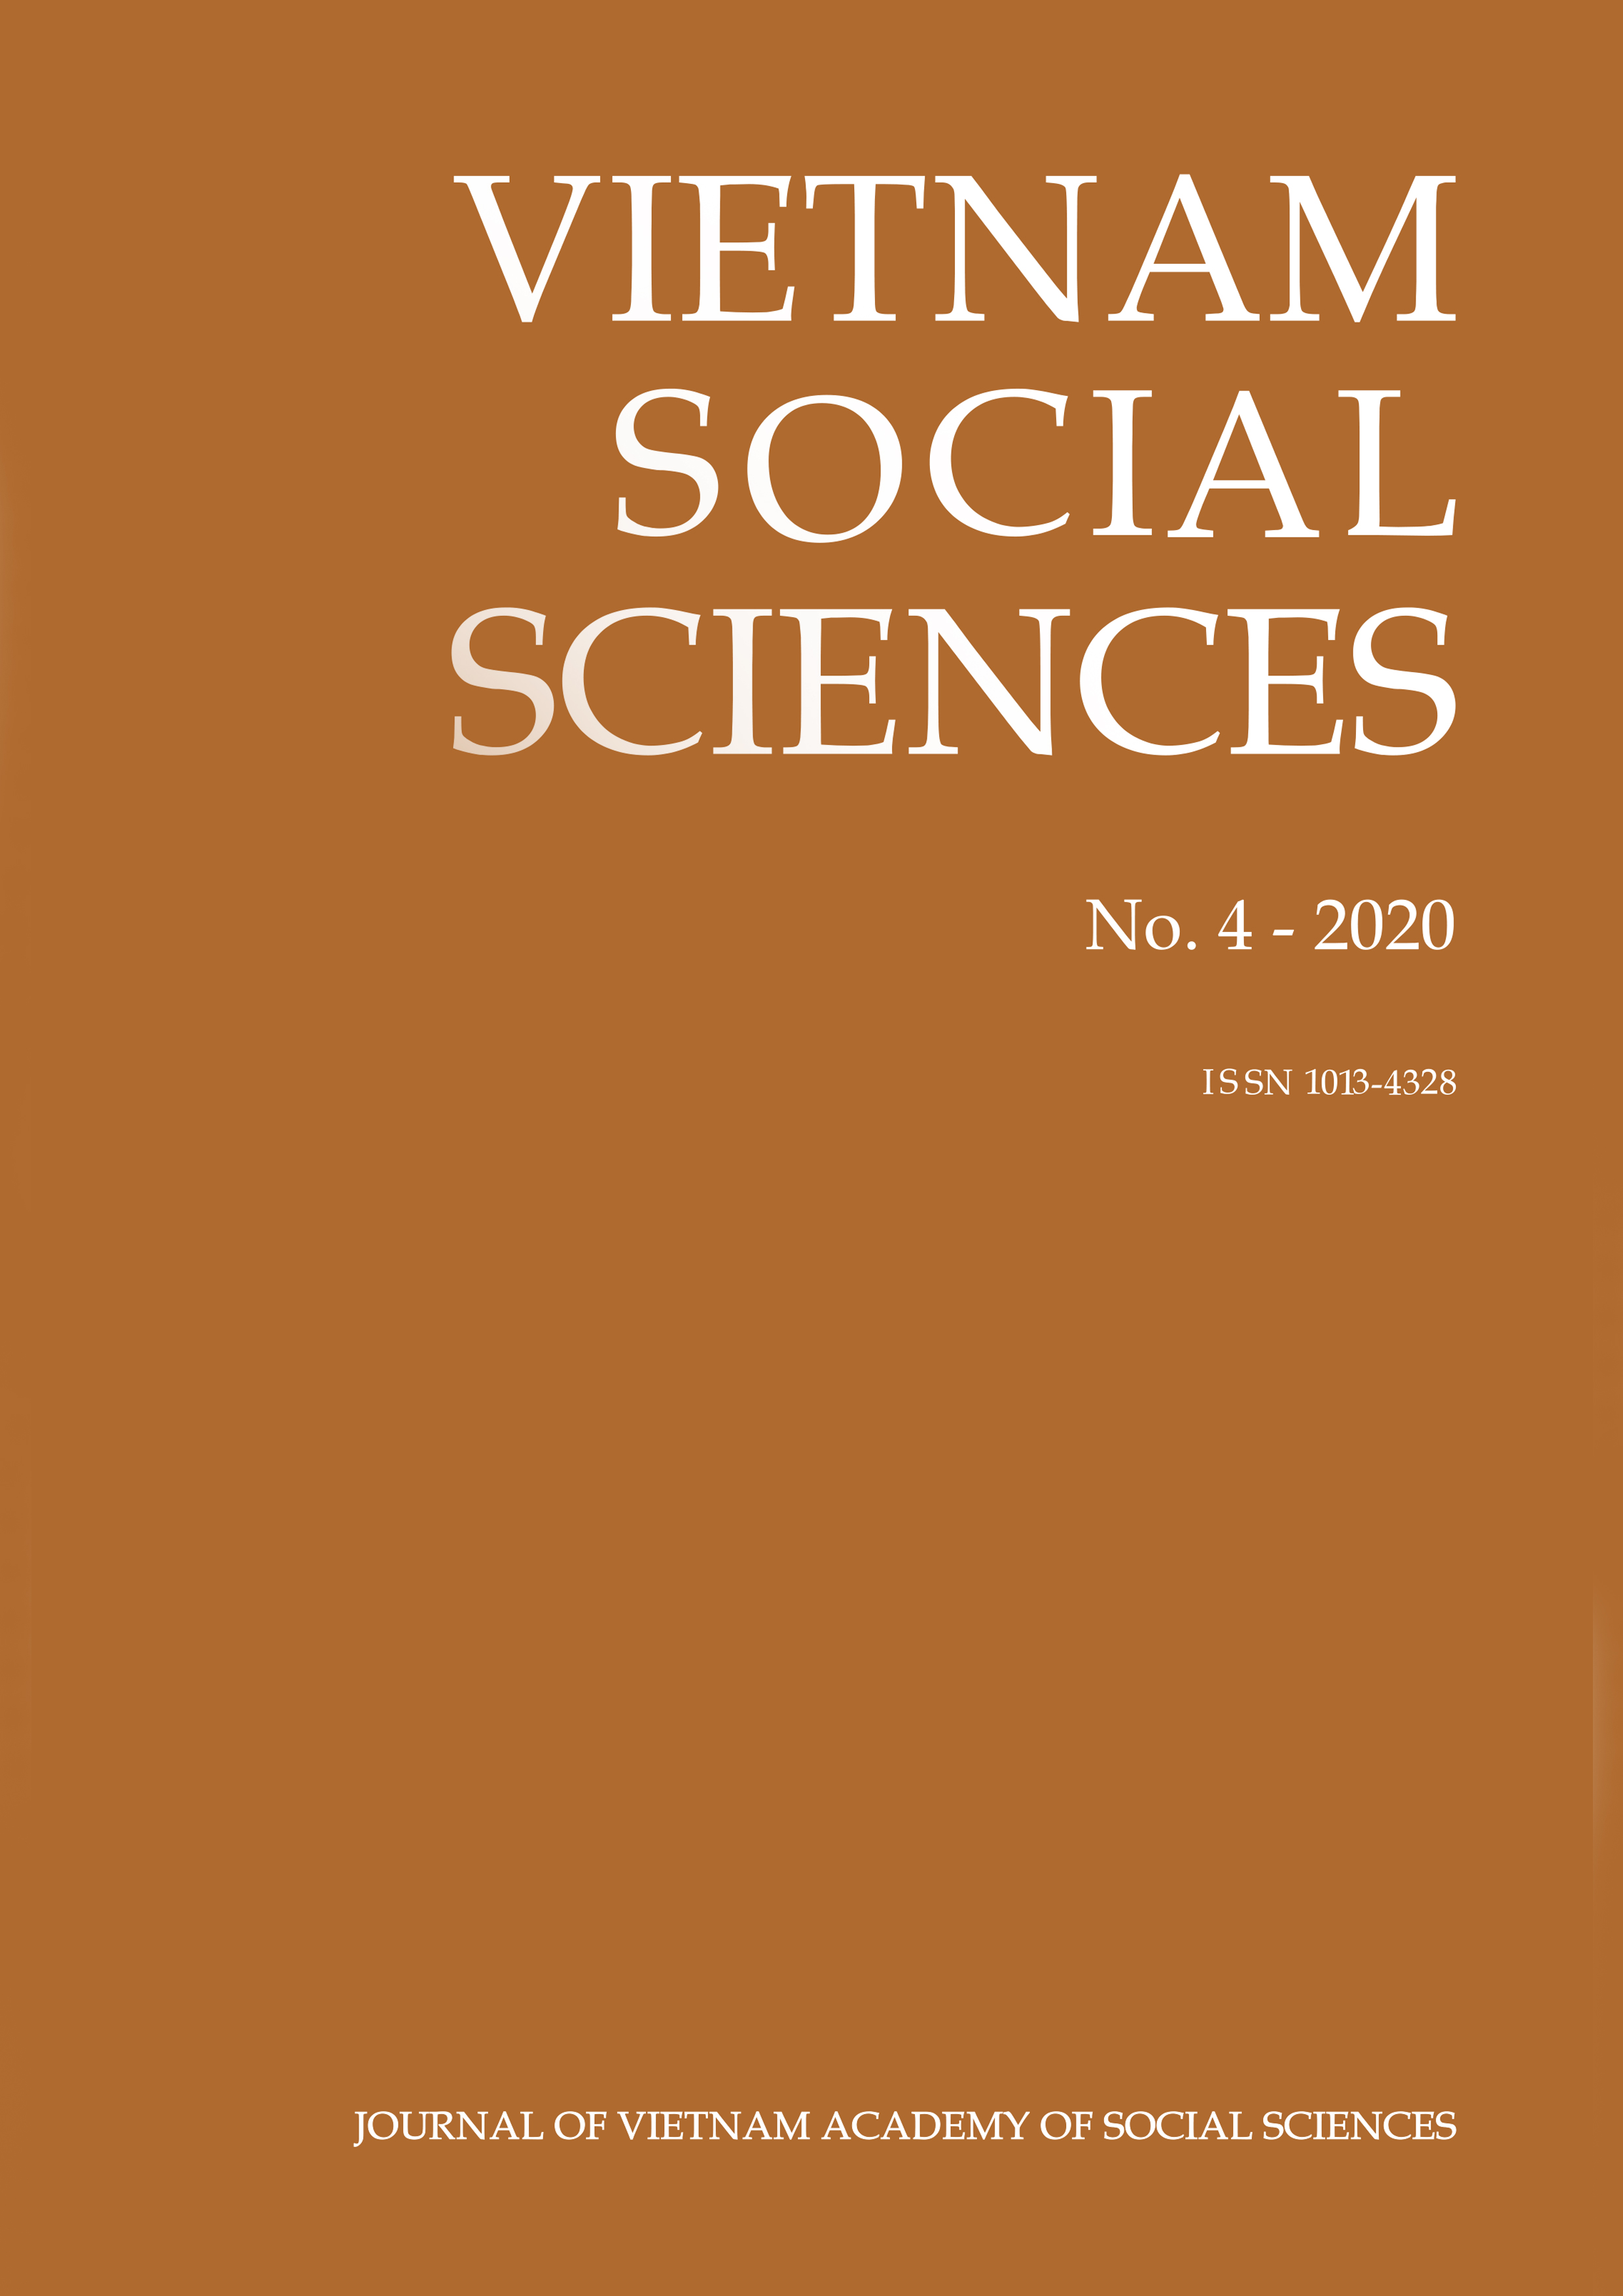 Vietnam Social Sciences. No. 4 - 2020